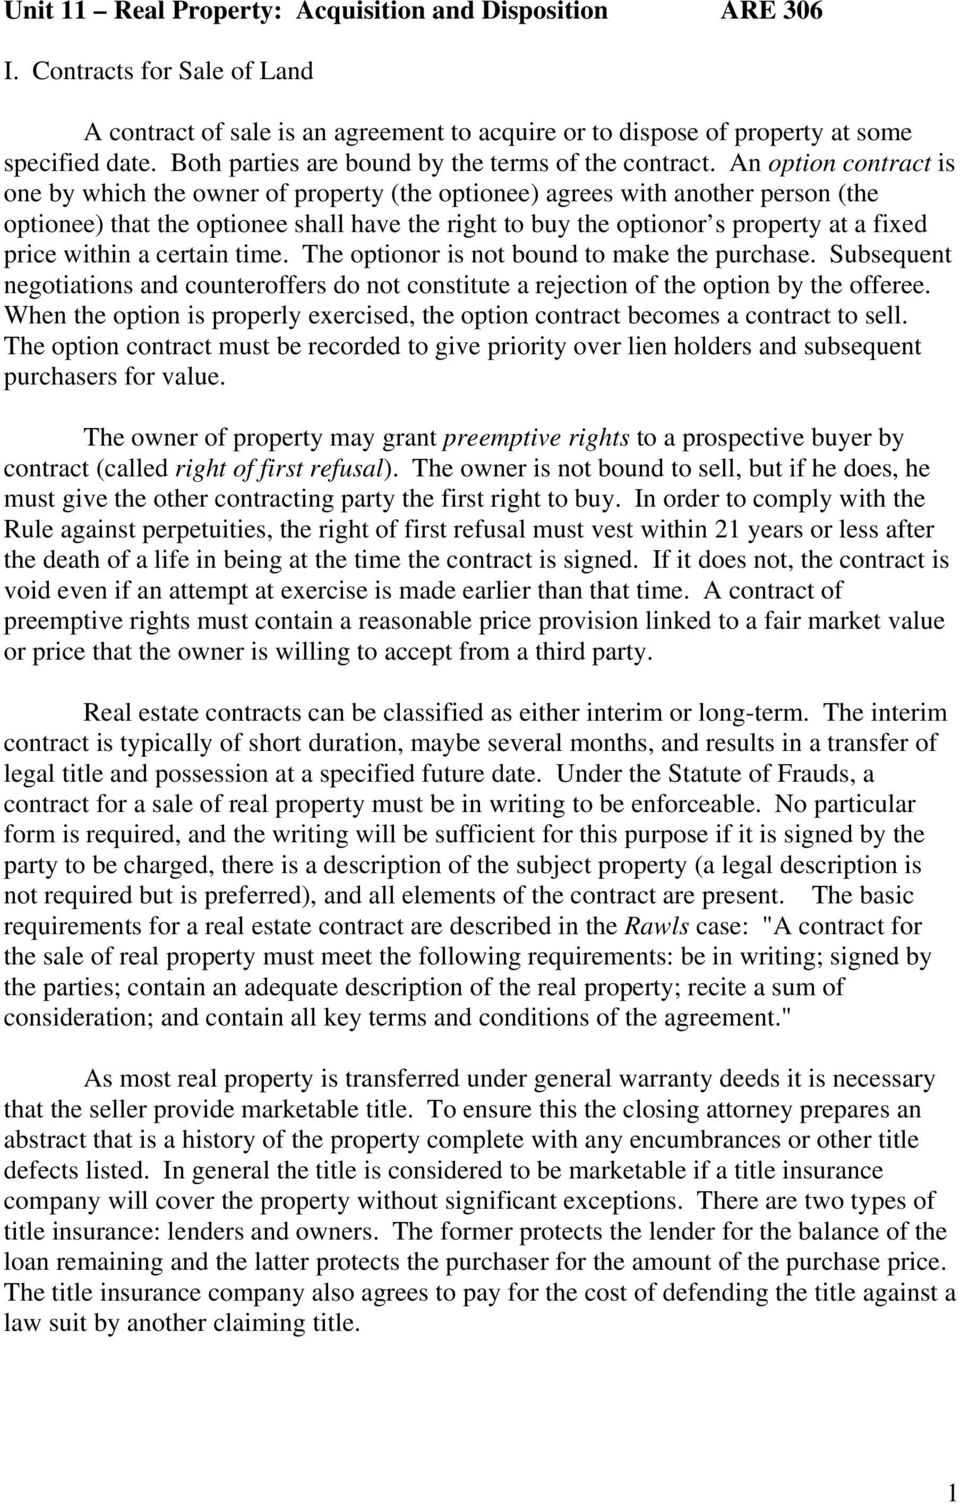 An option contract is one by which the owner of property (the optionee) agrees with another person (the optionee) that the optionee shall have the right to buy the optionor s property at a fixed